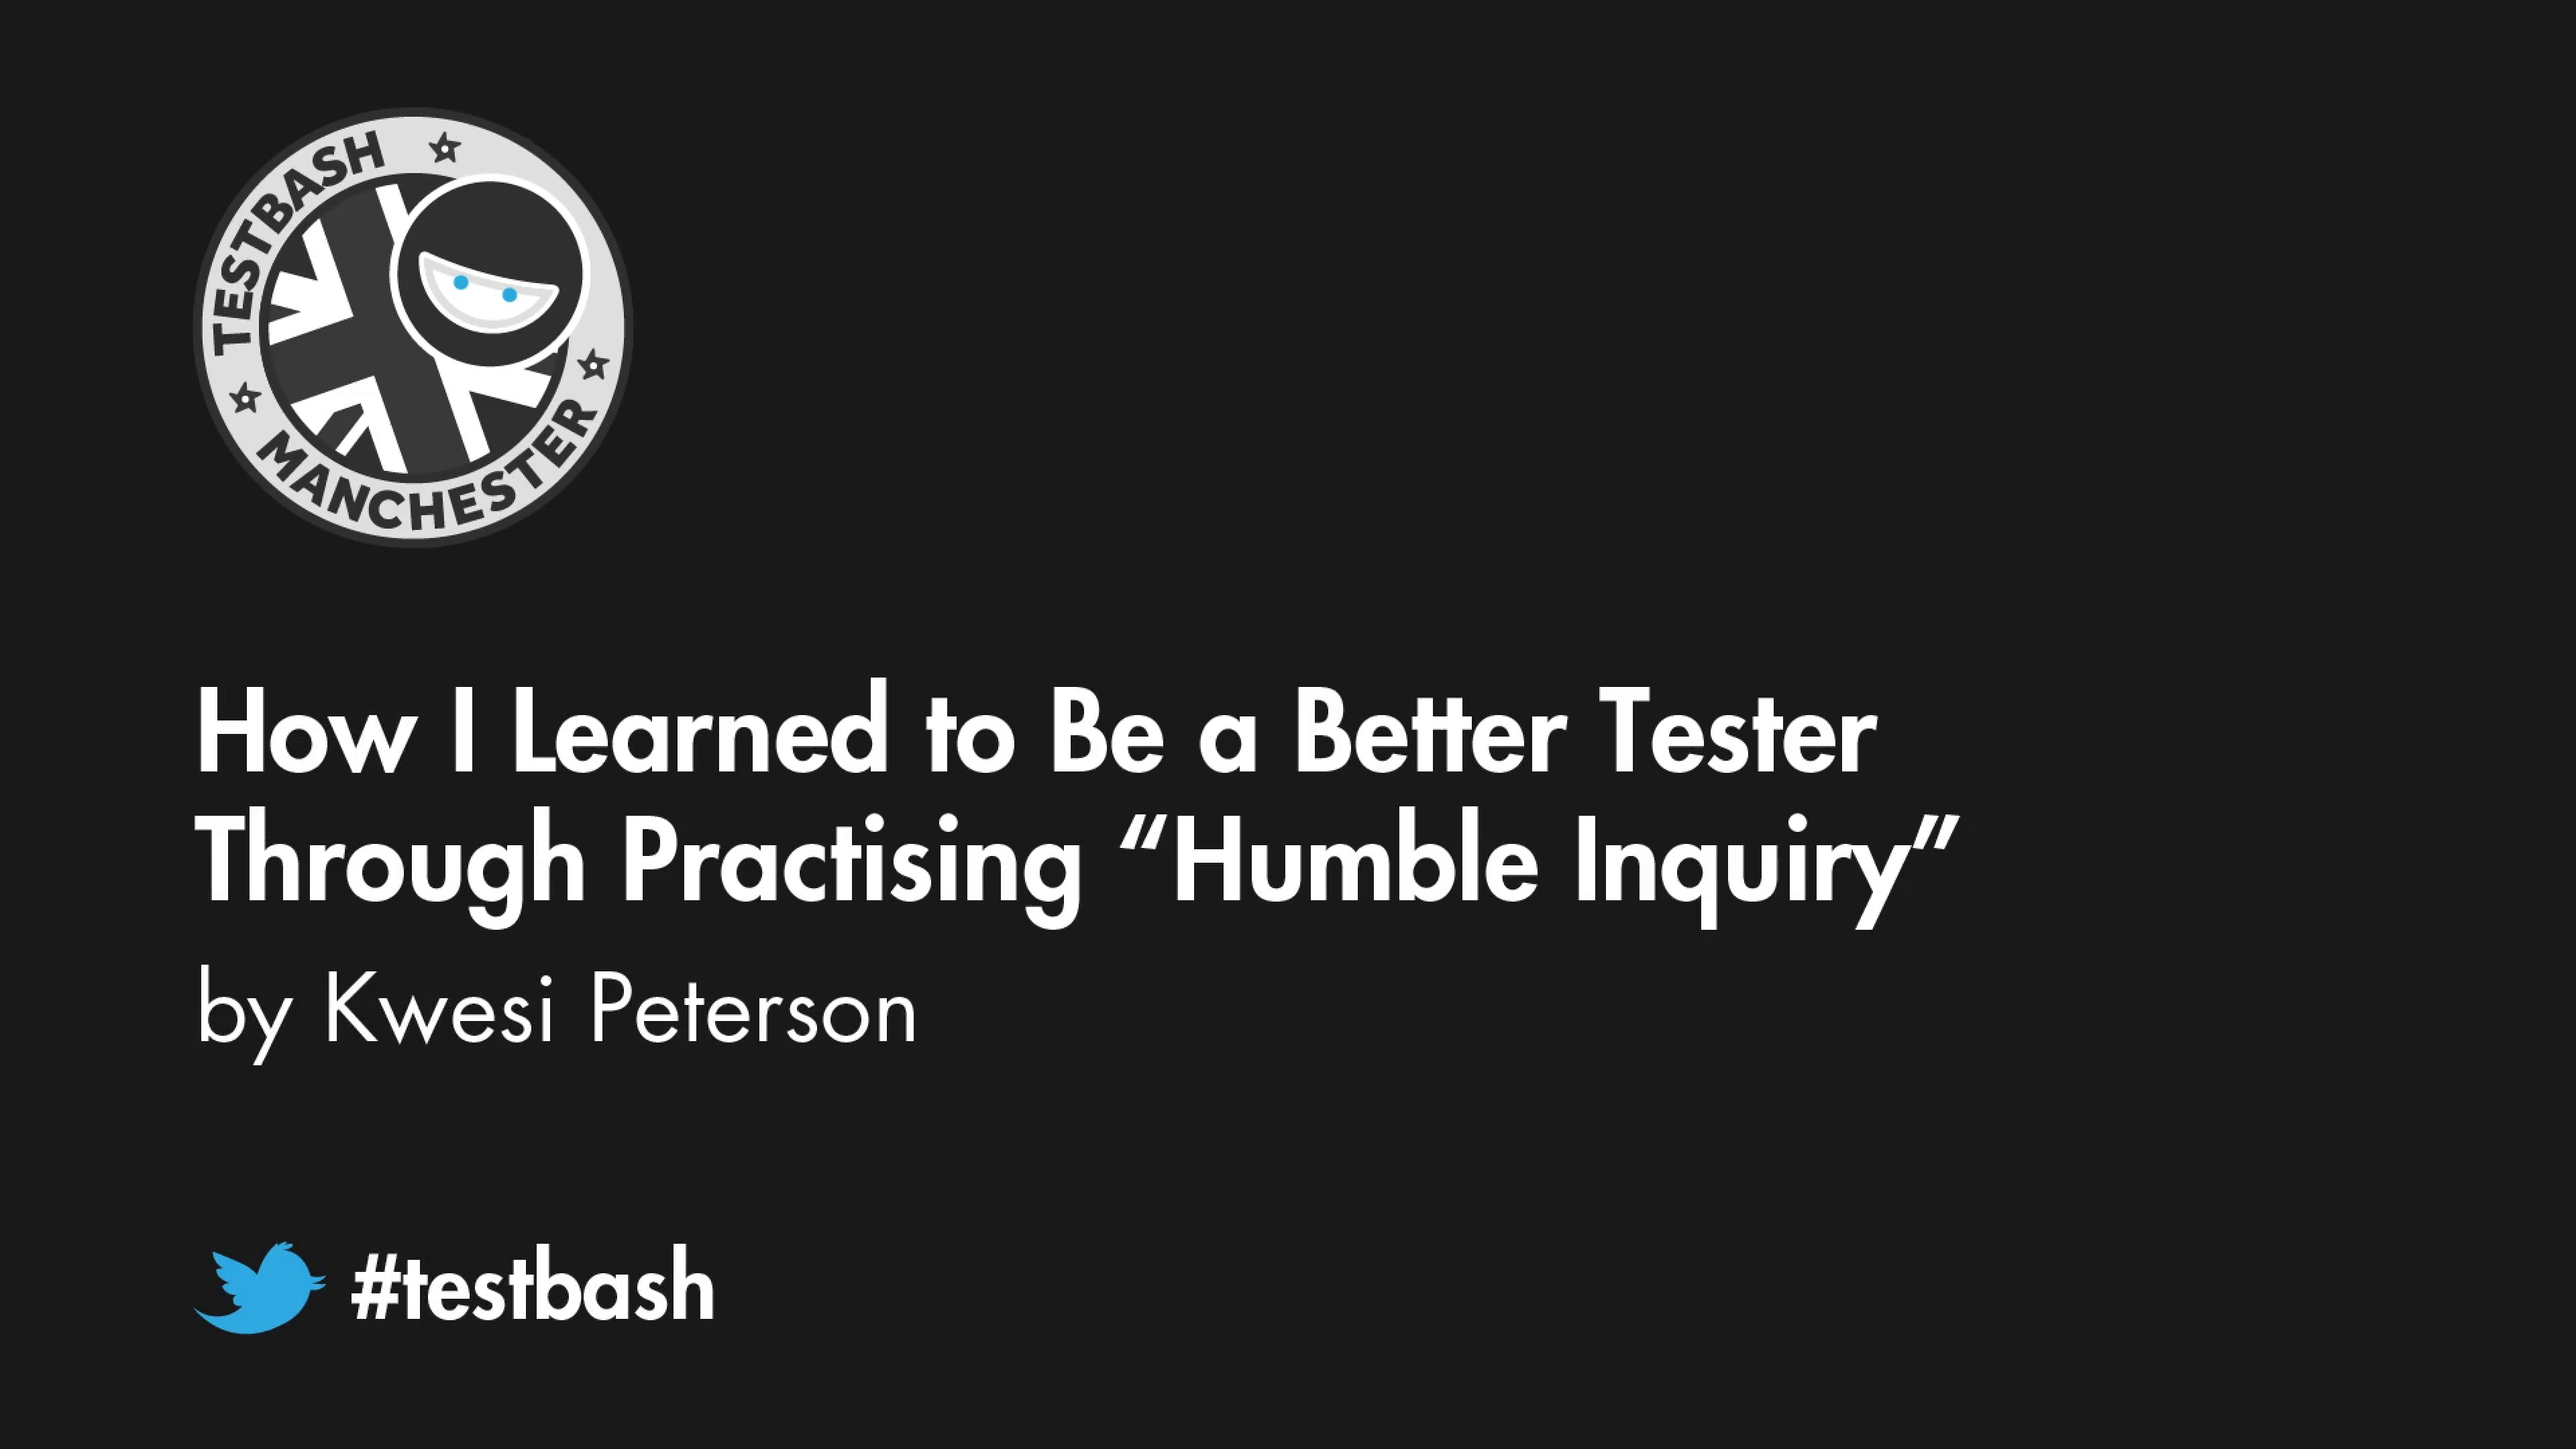 "How I Learned to Be a Better Tester Through Practising ""Humble Inquiry"" - Kwesi Peterson"